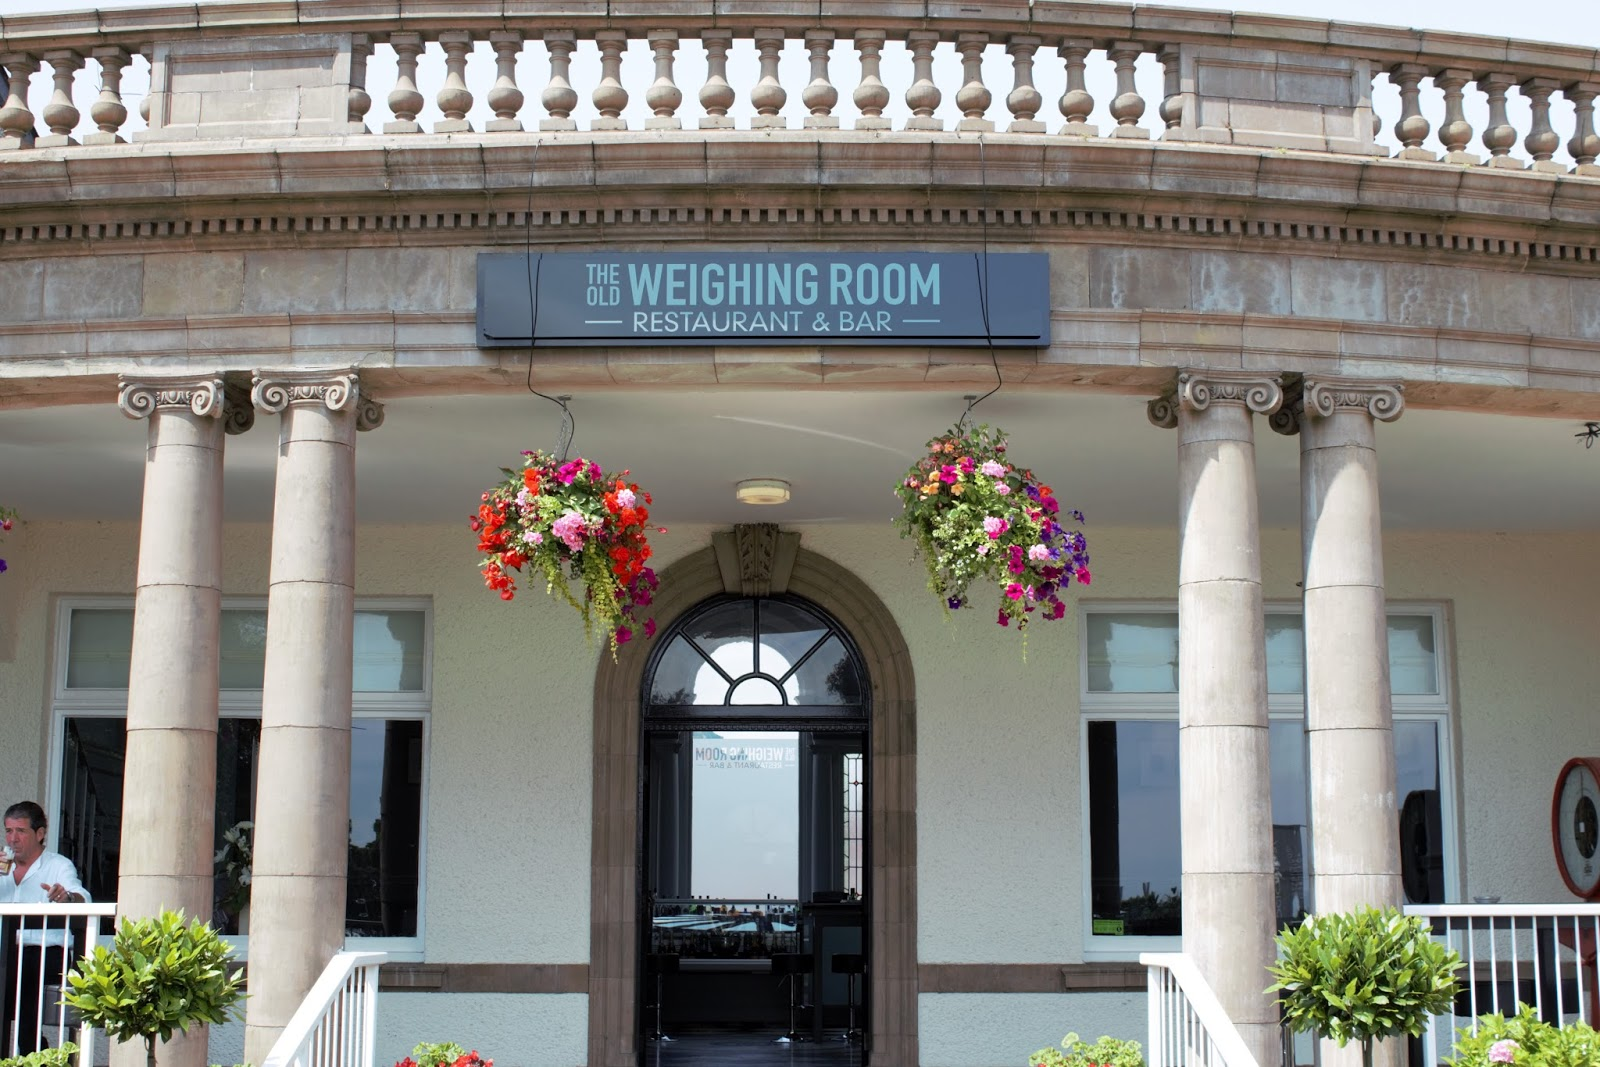 The Old Weighing Room, Doncaster